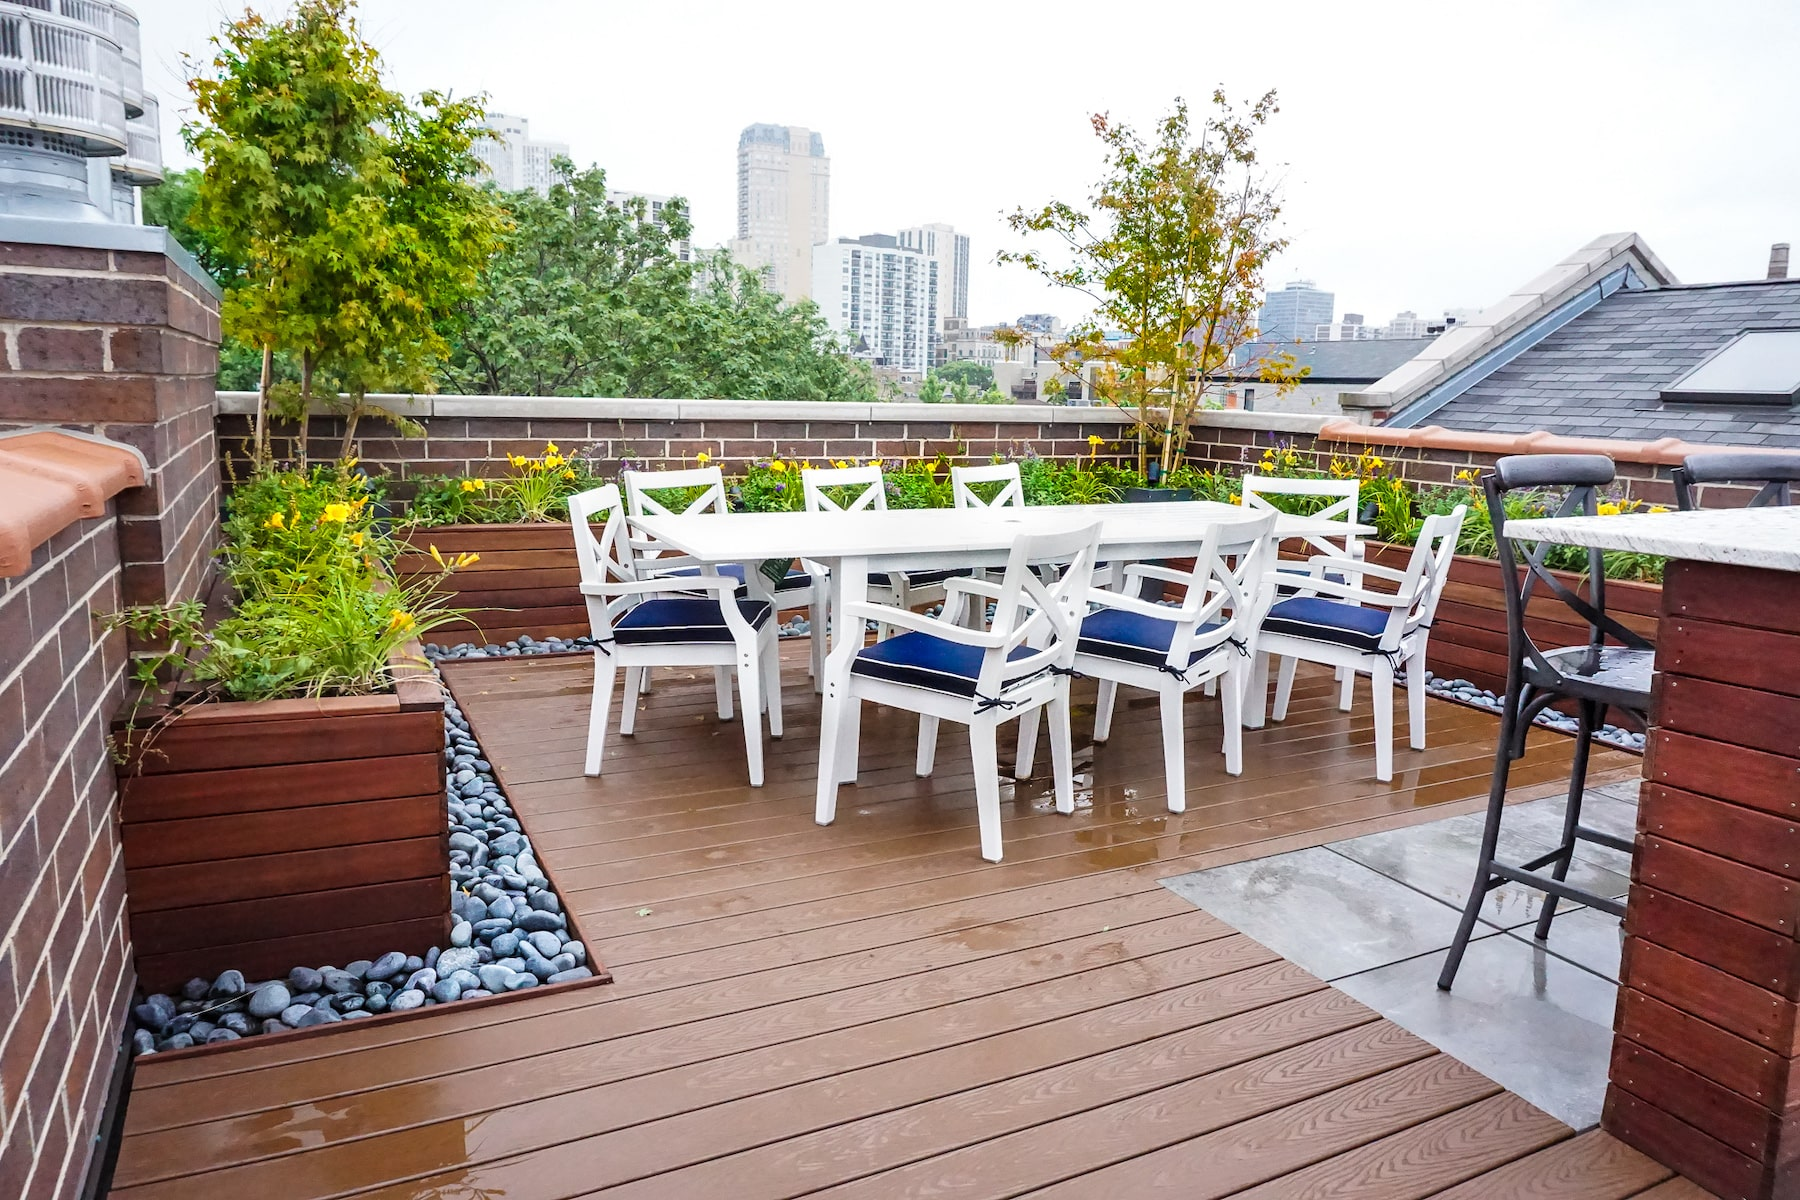 Outdoor Dining and Built-In Planters